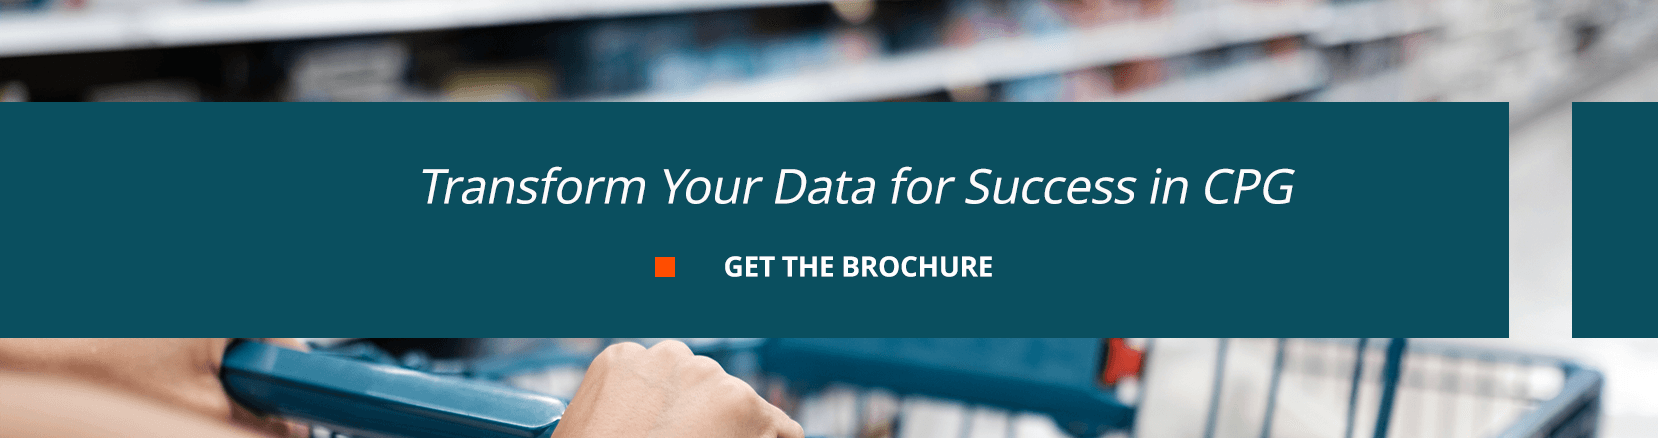 Transform Your Data for Success in CPG. Get the Brochure.